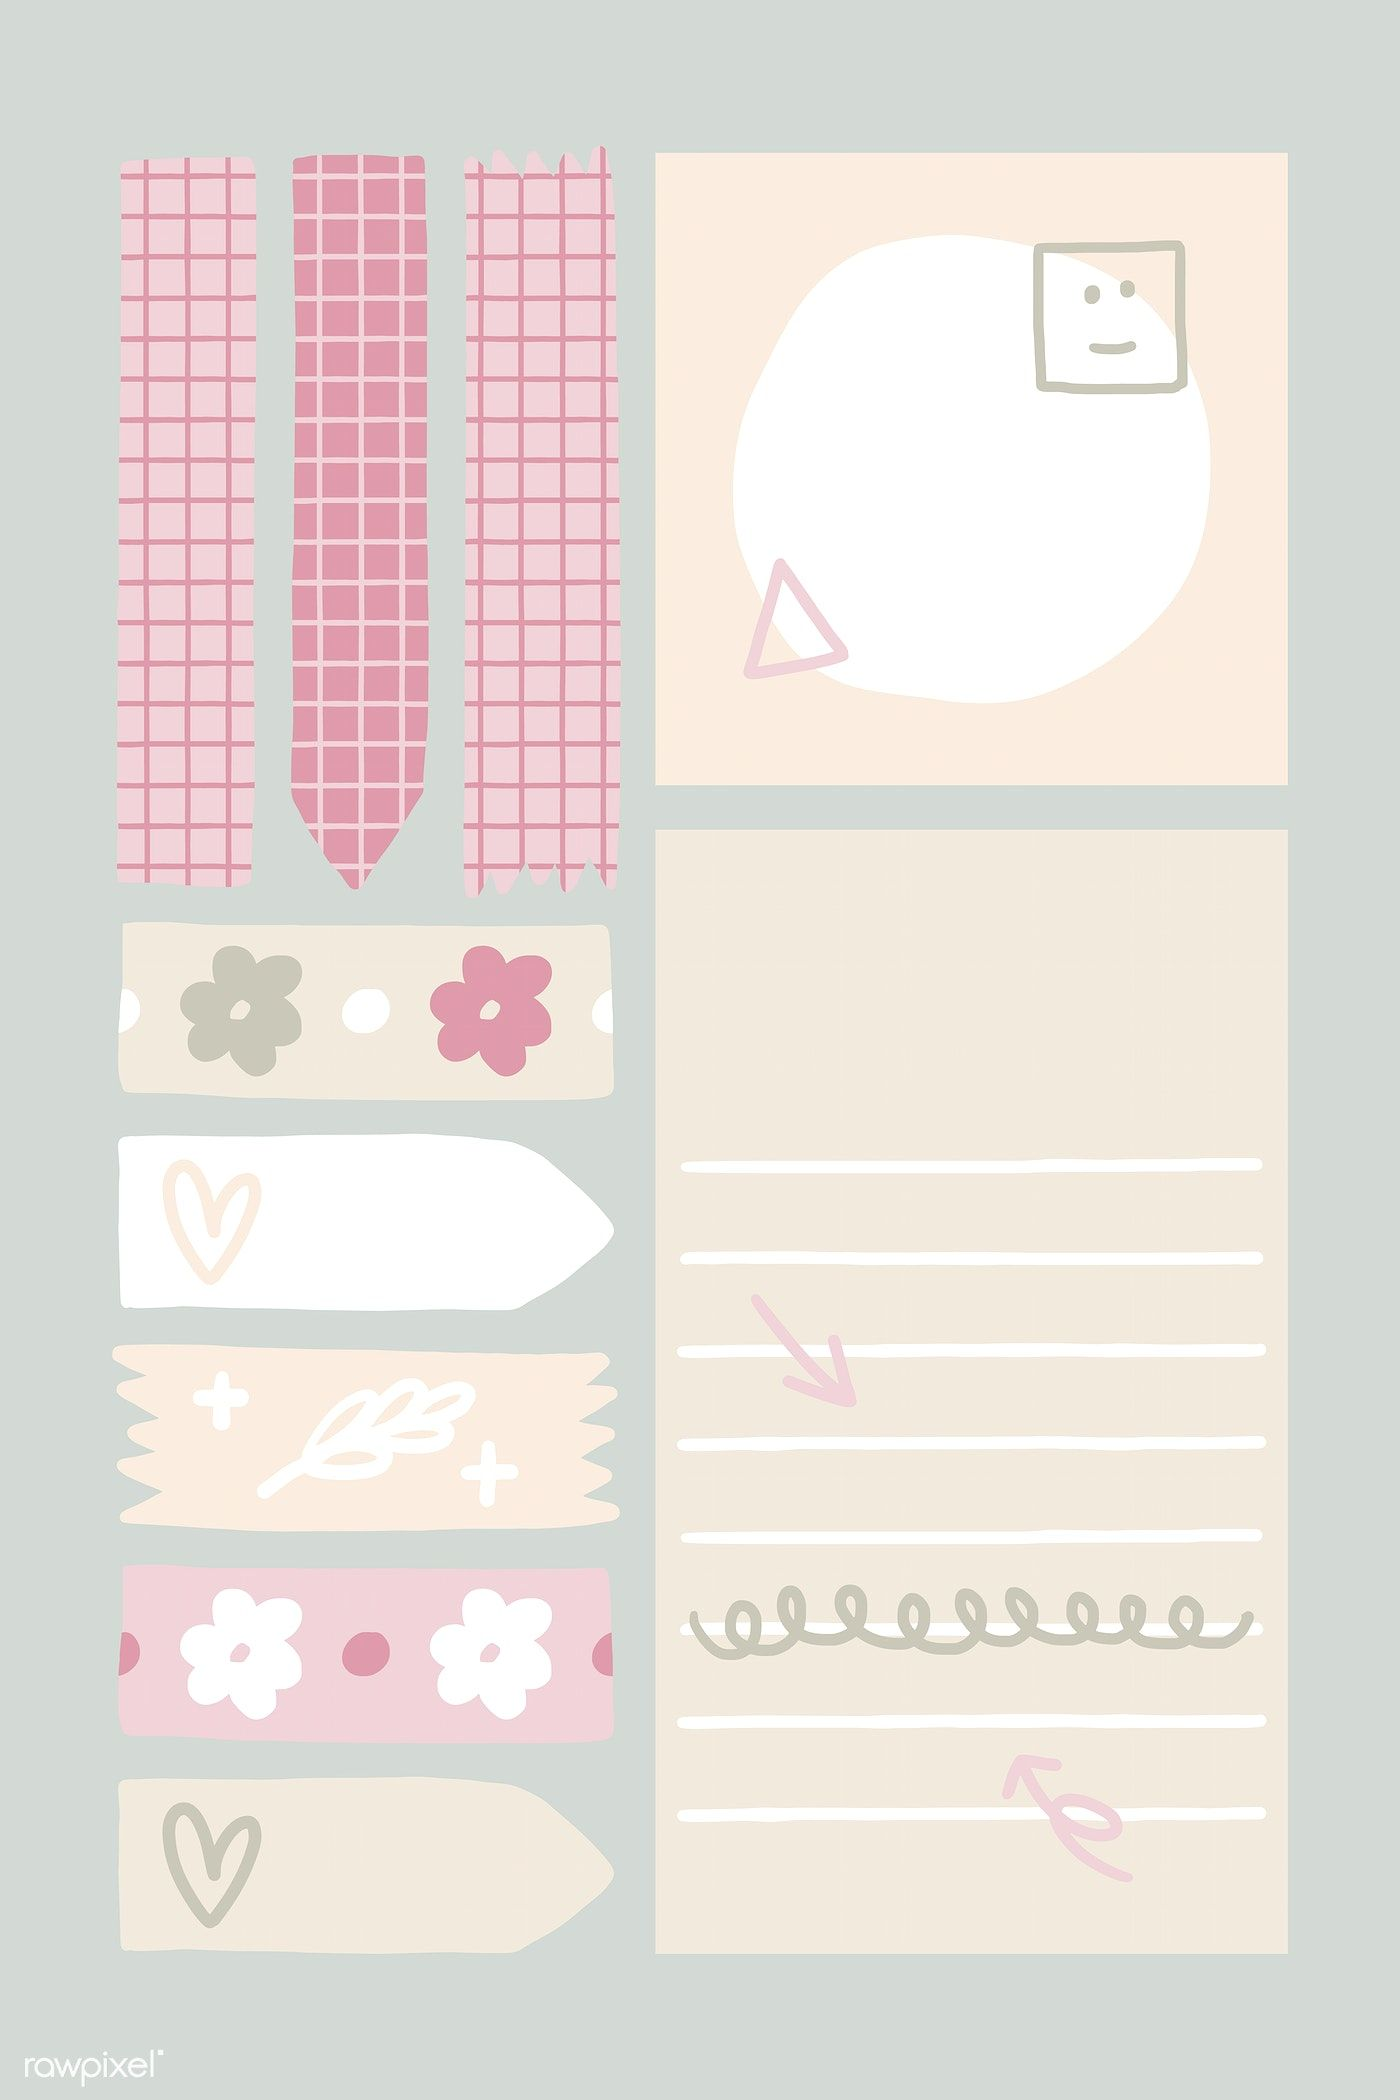 Sticky note doodle design collection vectors free image